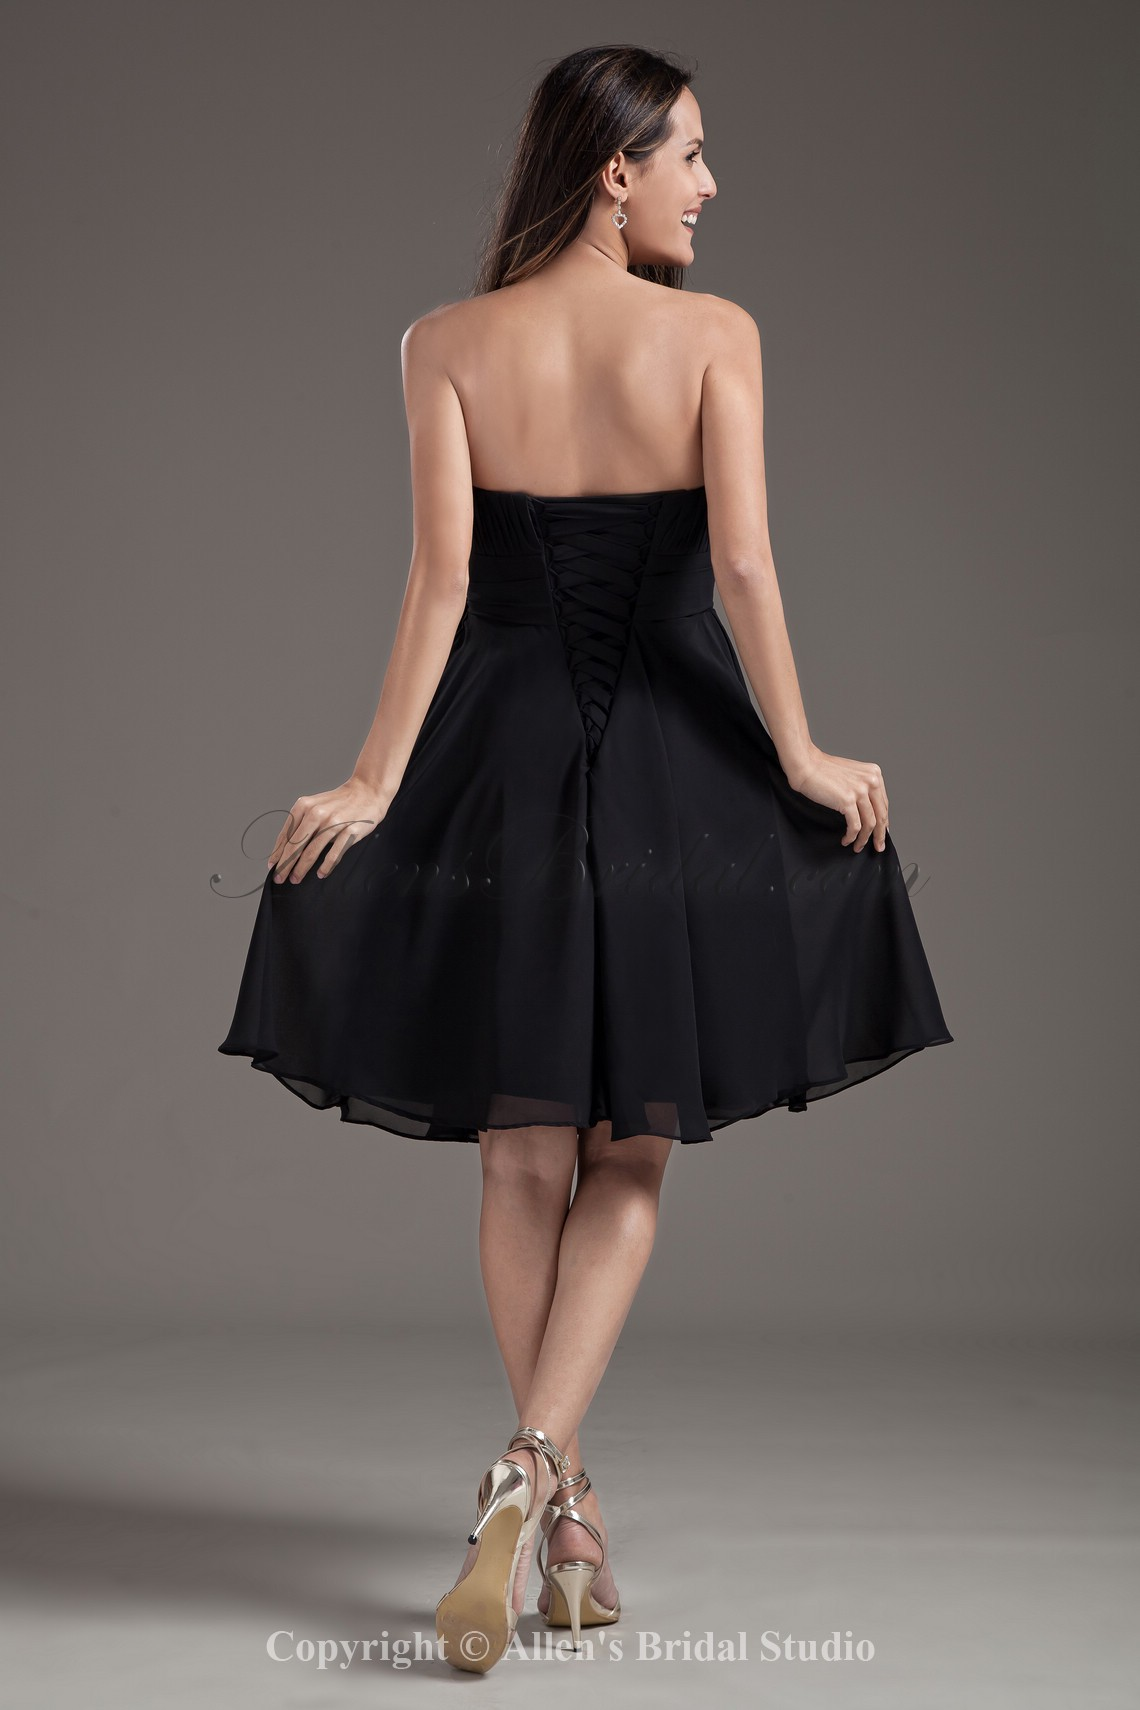 /124-991/chiffon-strapless-a-line-black-knee-length-sash-cocktail-dress.jpg